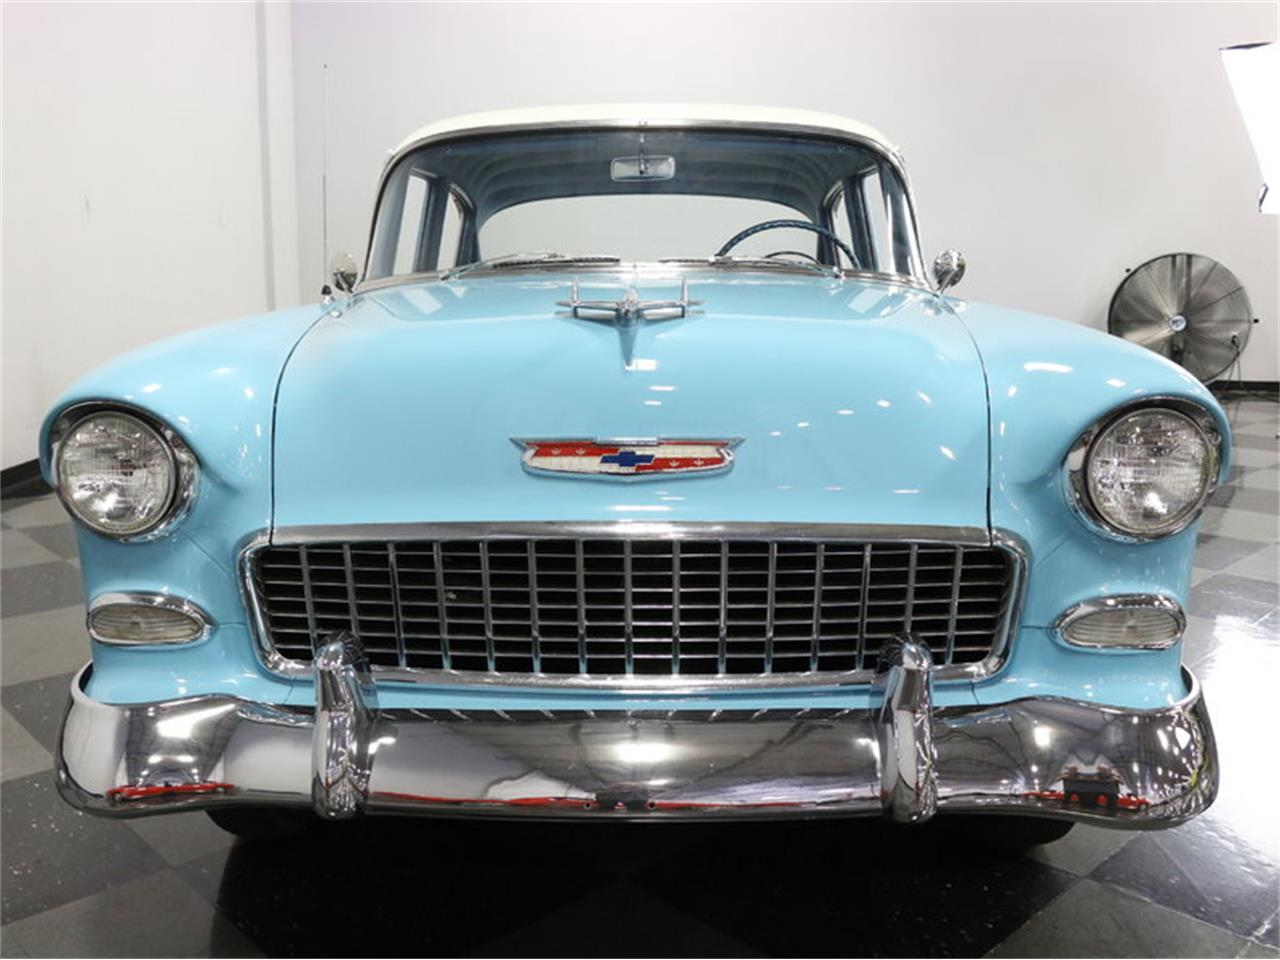 Large Picture of Classic '55 Chevrolet Bel Air Offered by Streetside Classics - Dallas / Fort Worth - LSOT